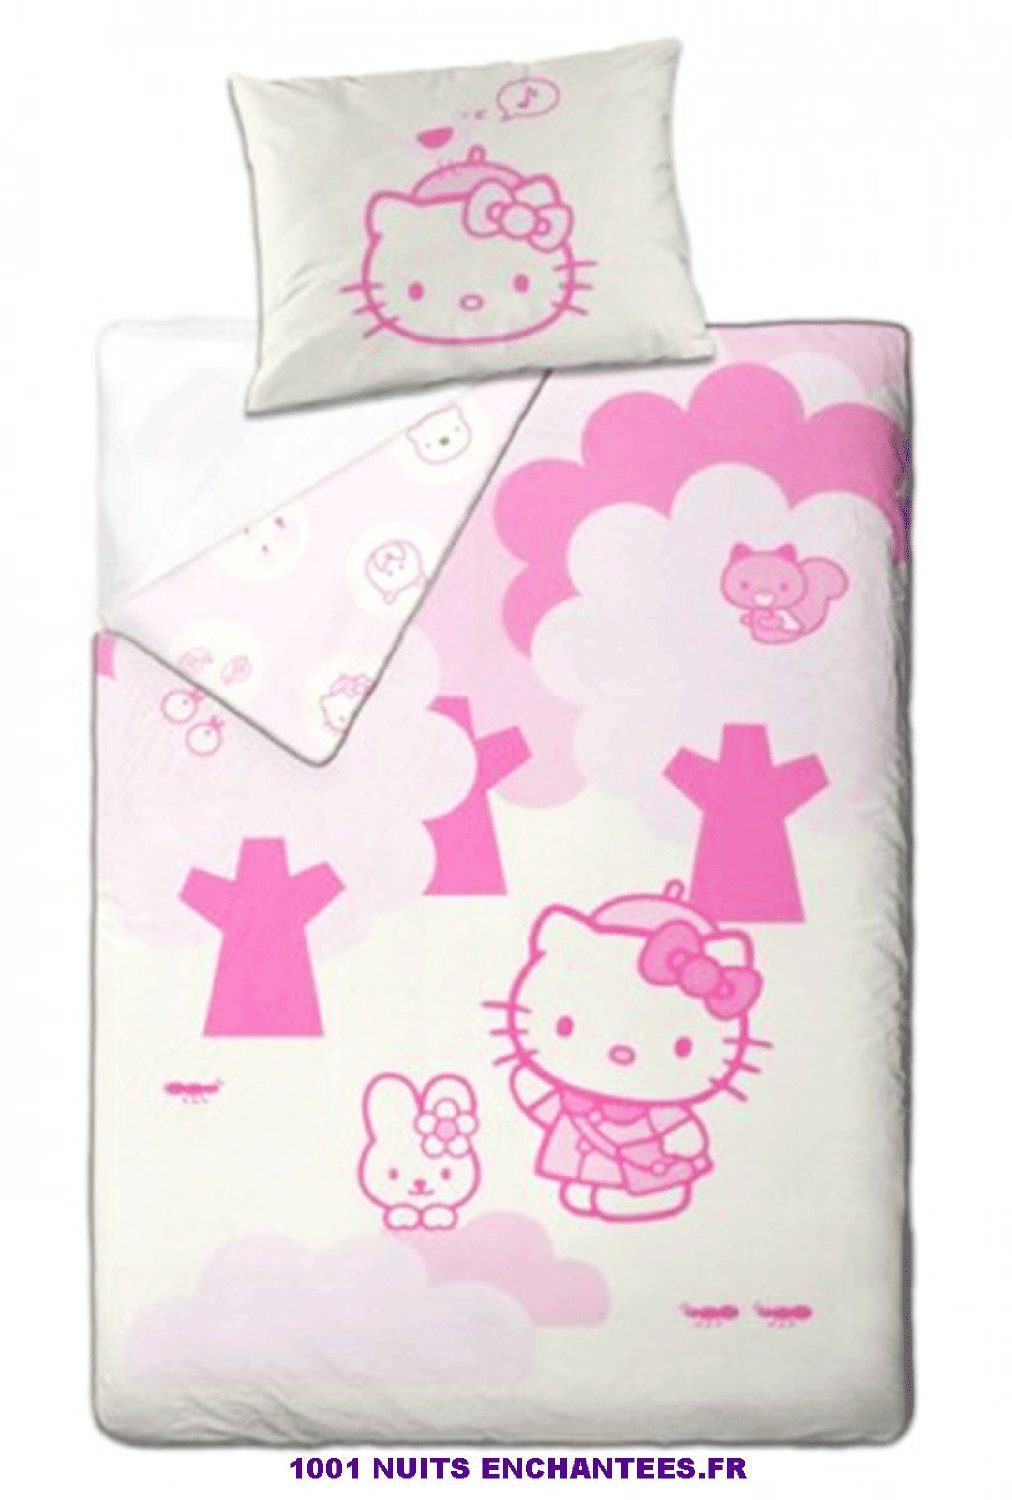 free matire premire coton bio coton bio with housse de couette hello kitty 140x200. Black Bedroom Furniture Sets. Home Design Ideas